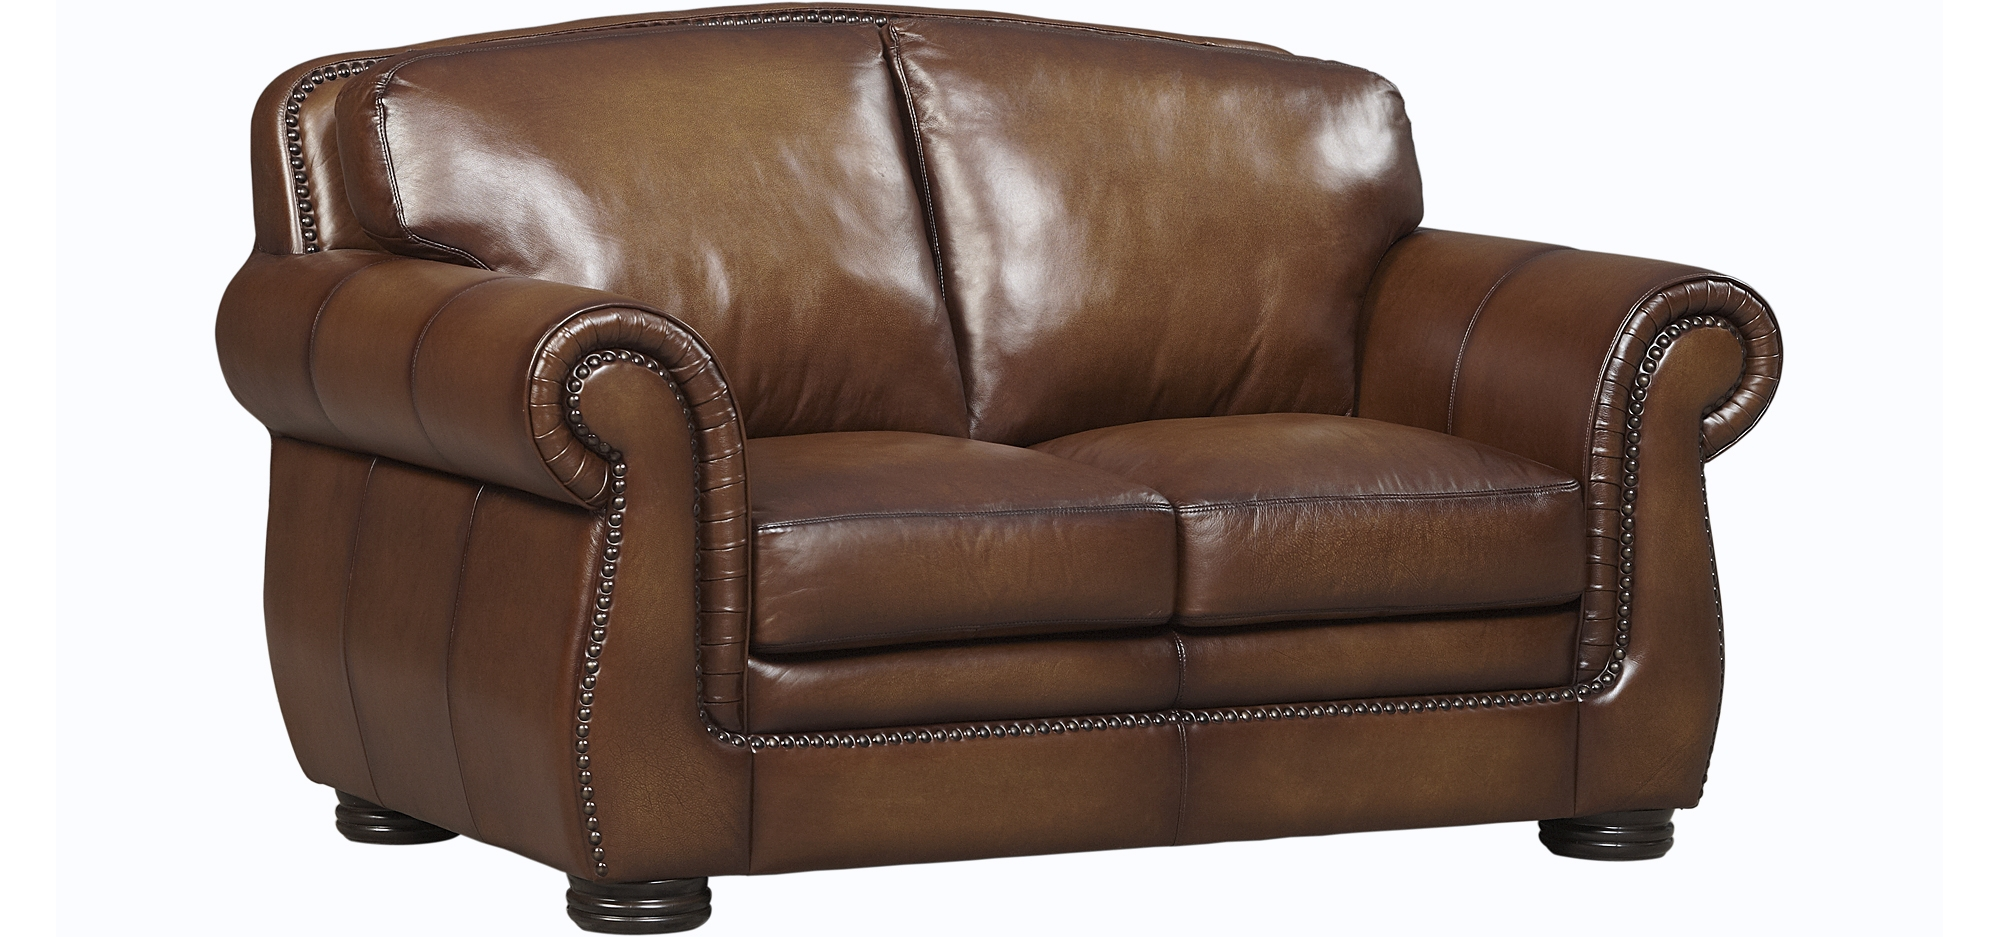 Loveseats In Leather Fabric Brown Beige More Havertys